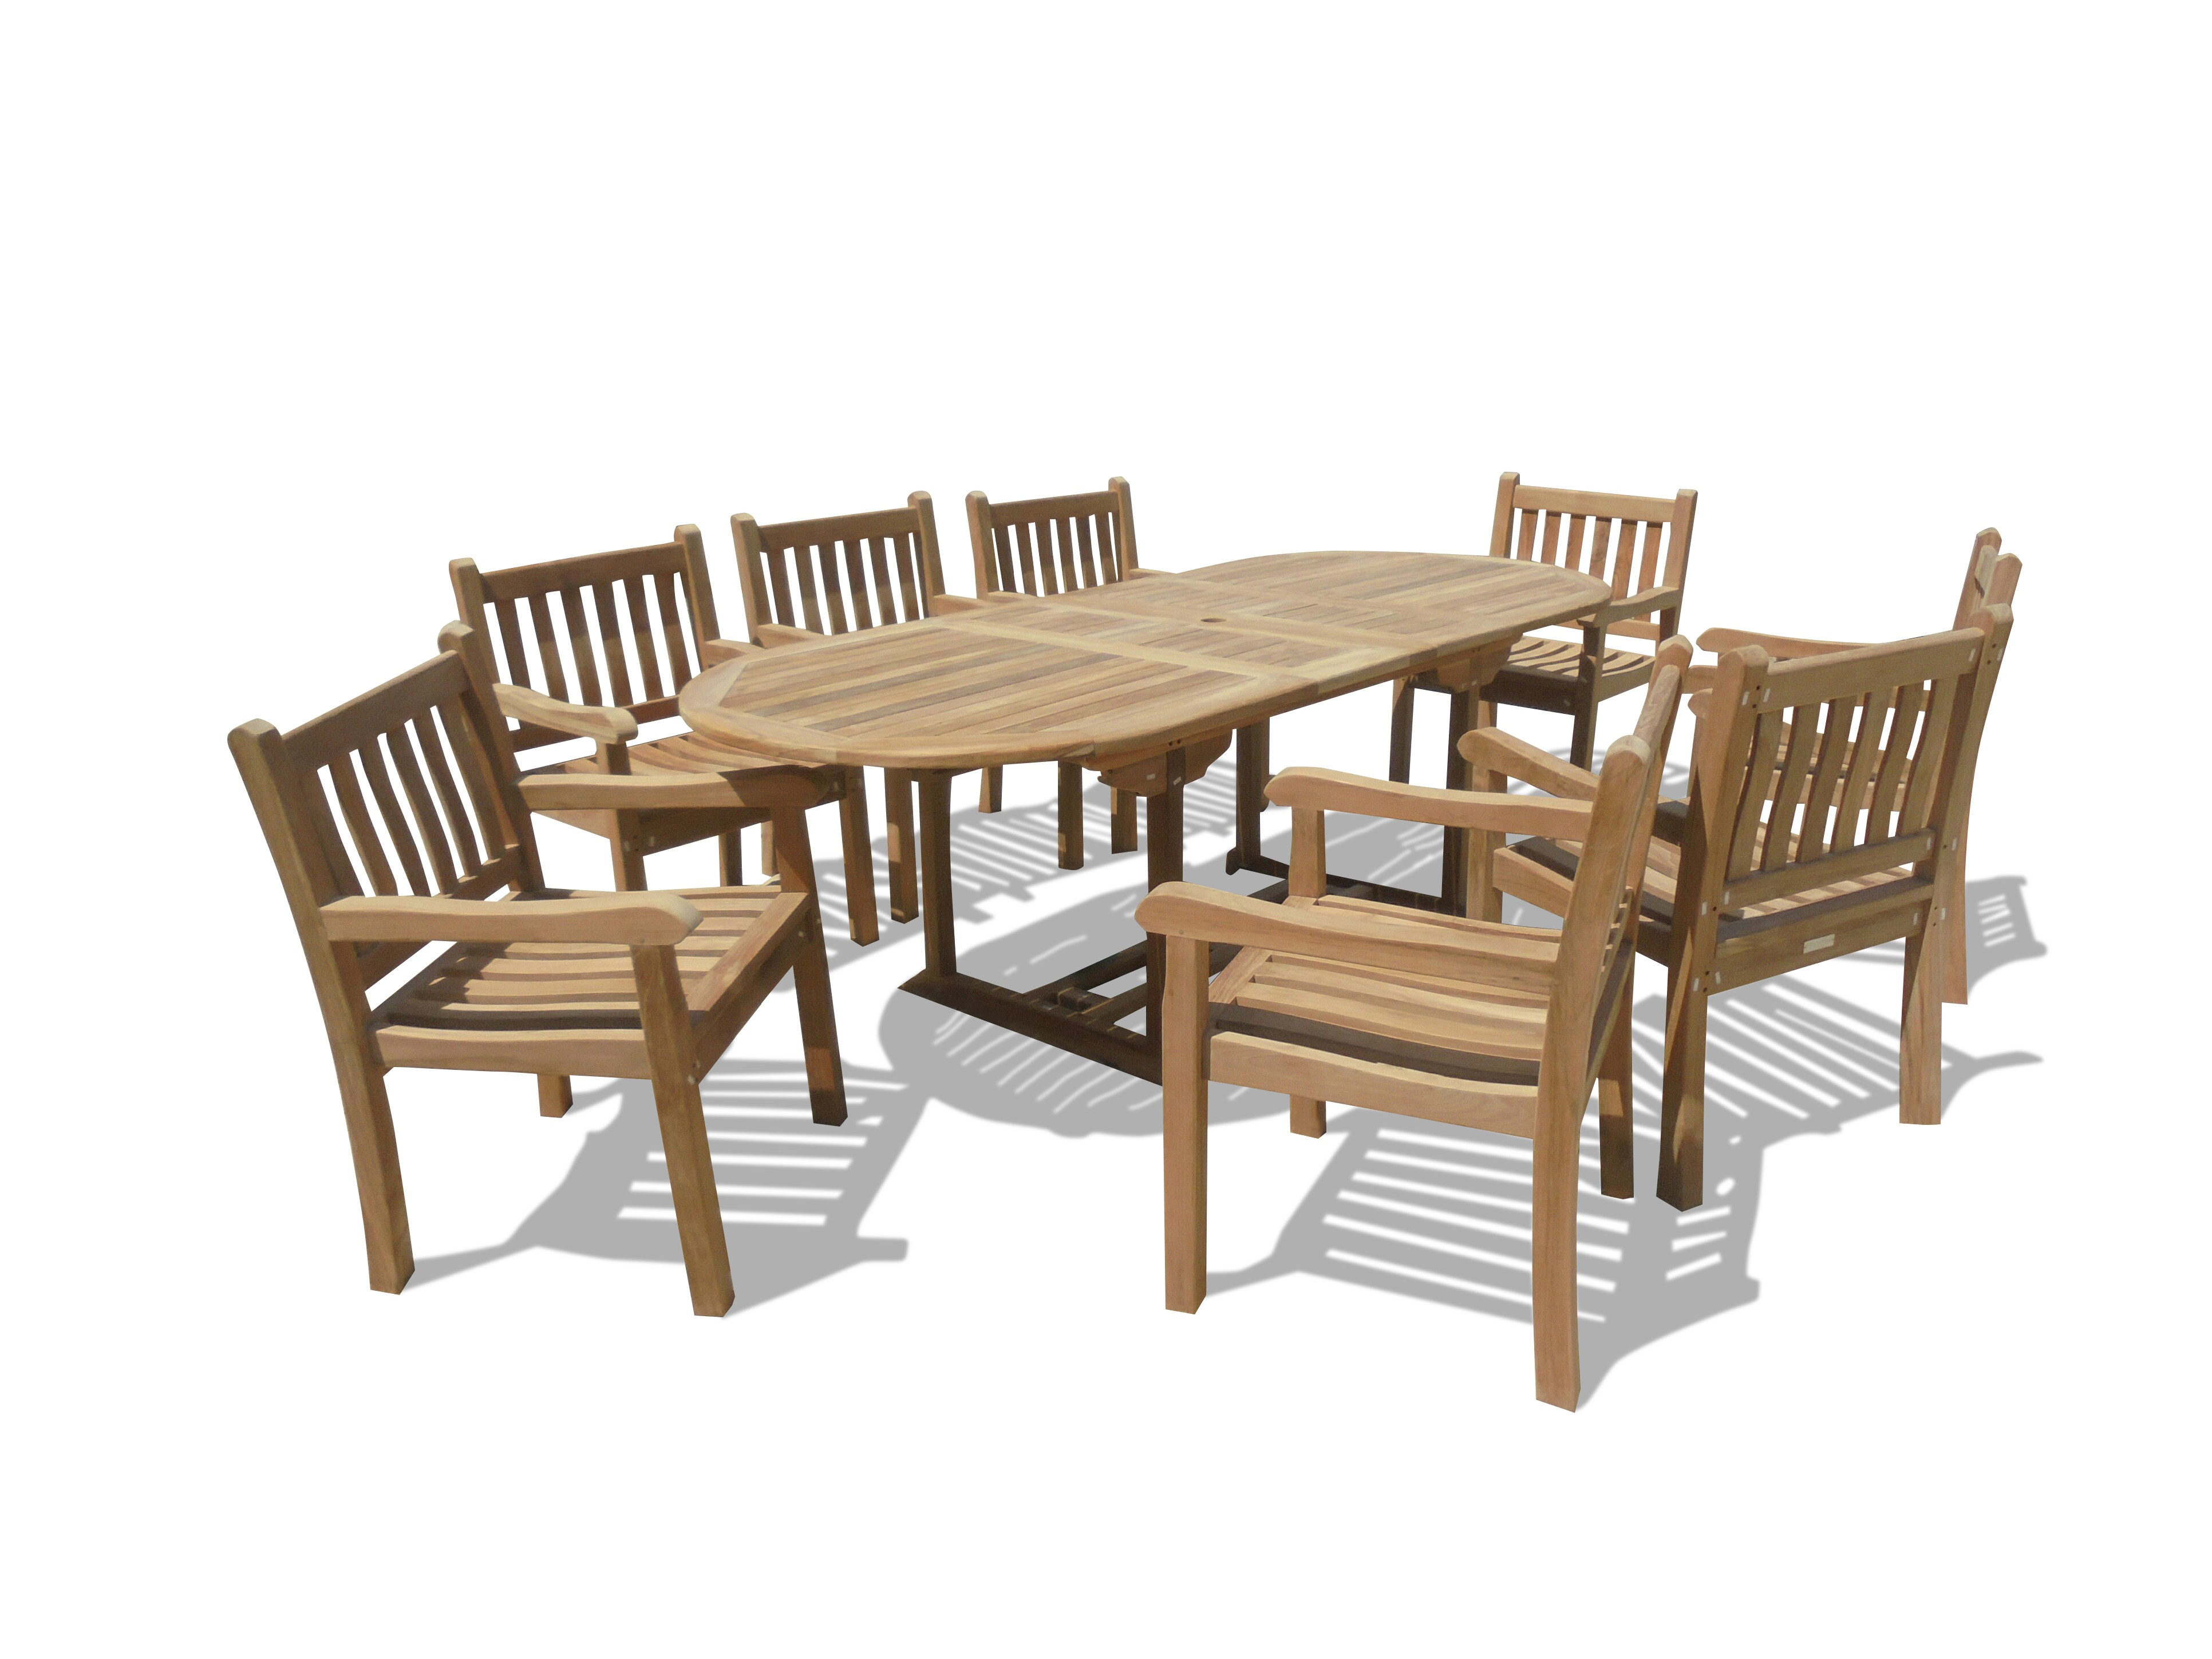 "Buckingham 82 x 39"" Oval Double Leaf Teak Extension Table w/8 Majestic Windsor Arm Chairs...seats 8"